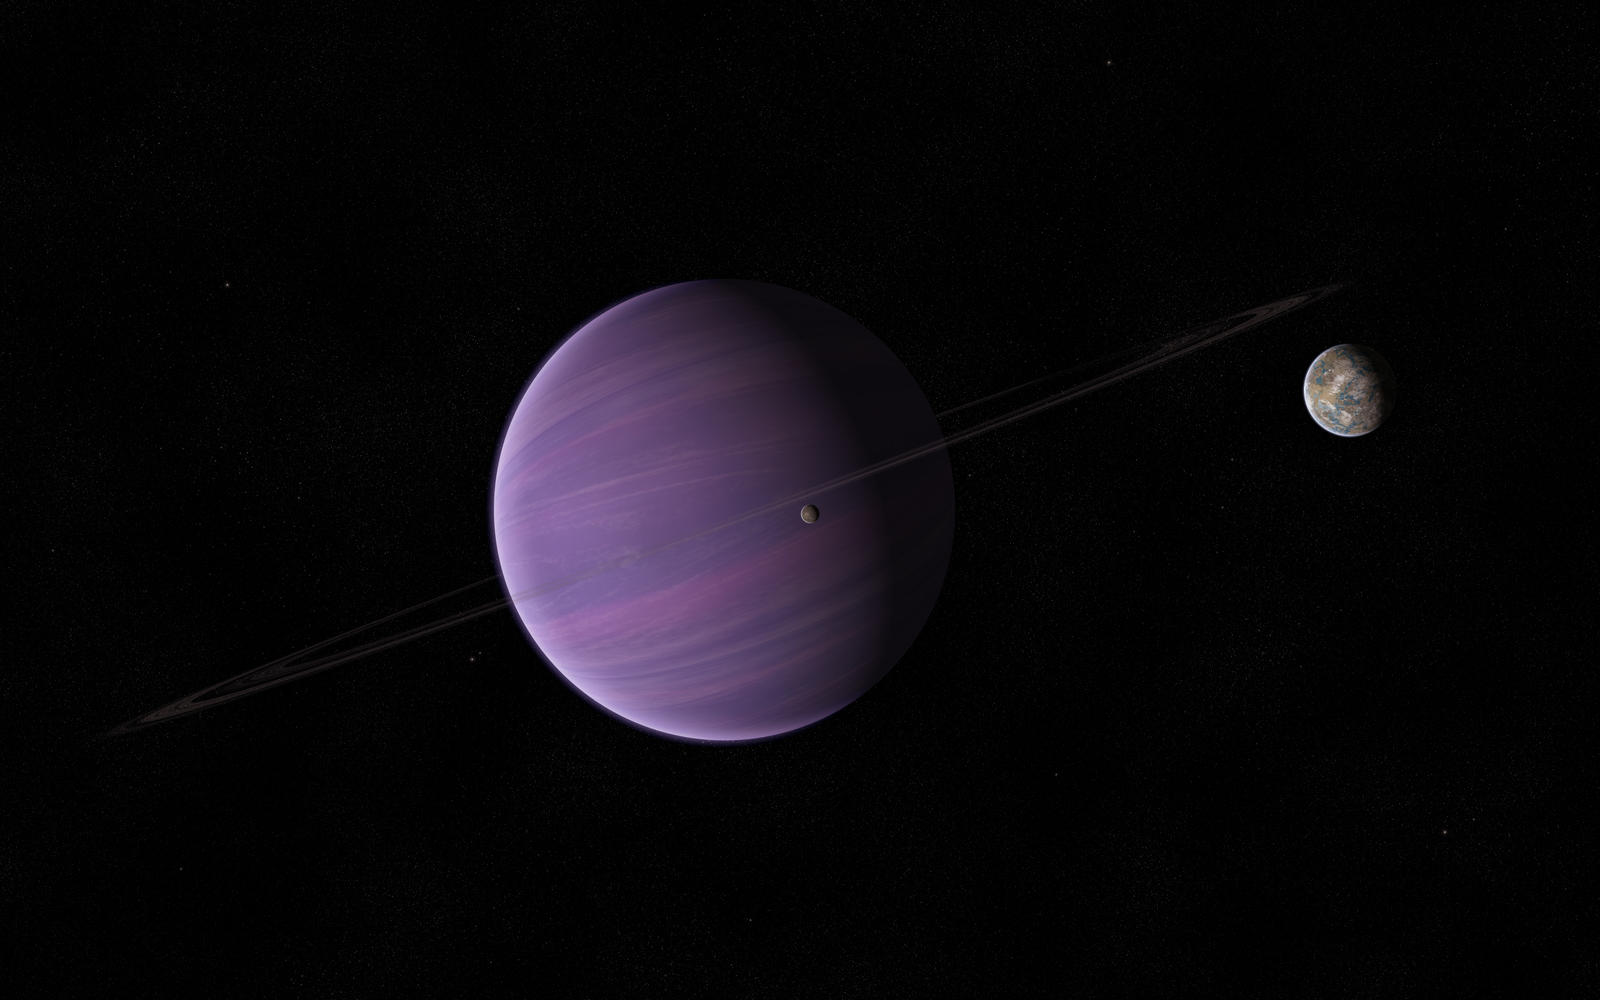 gliese 876 system - photo #9